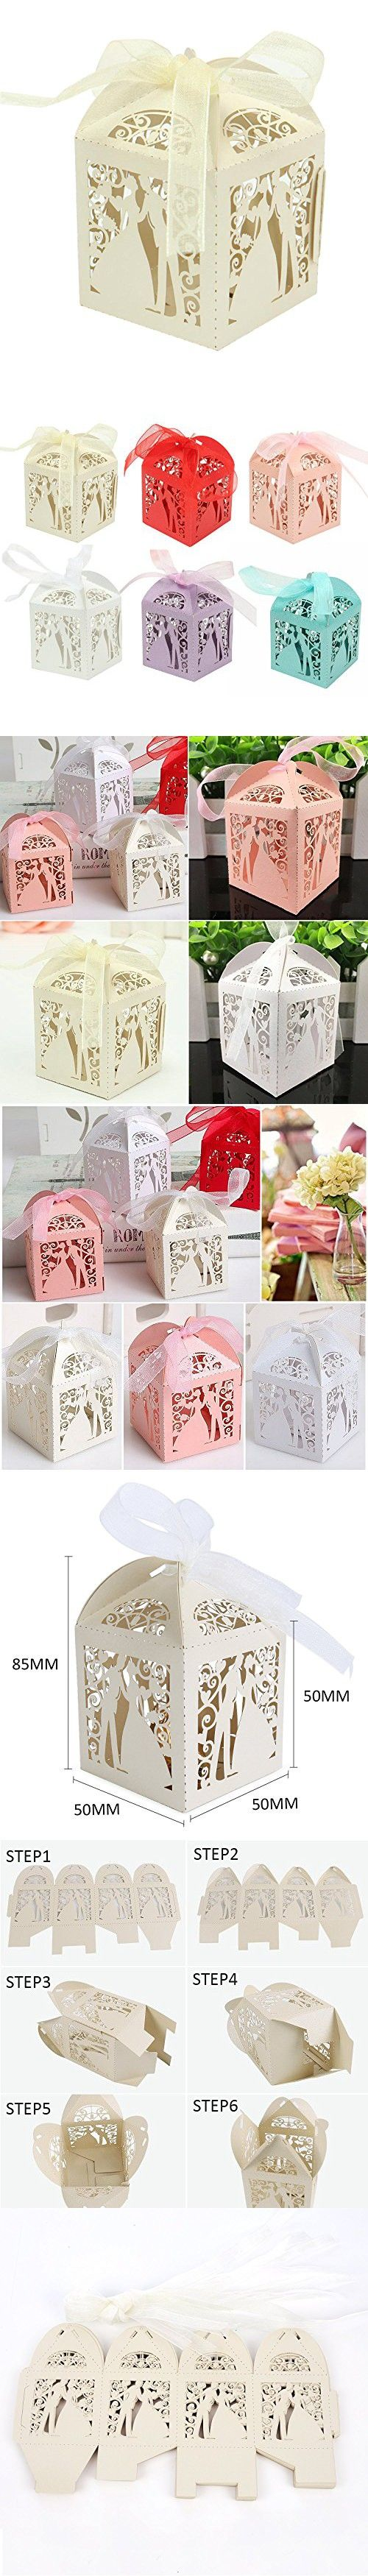 314 best Wedding Favors images on Pinterest